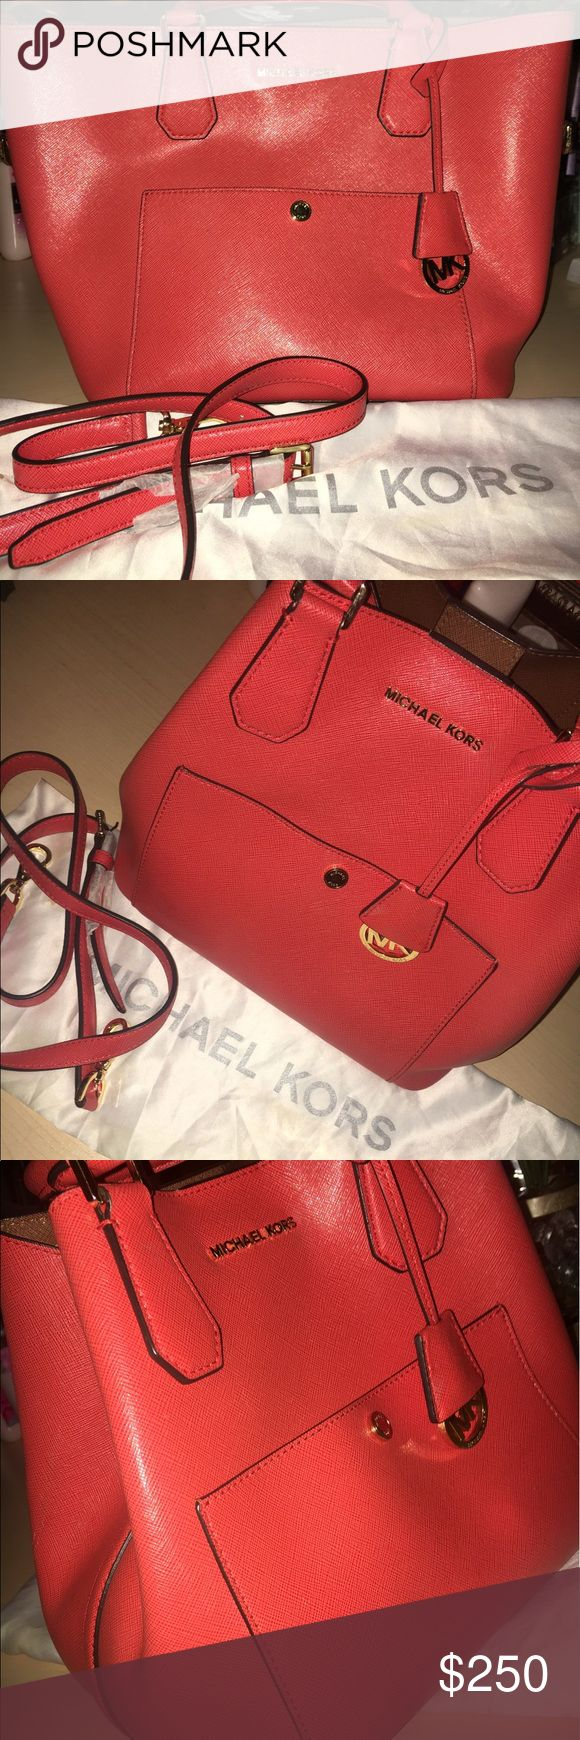 Michael Kors Greenwich Mandarin Tote 🎉🎉Only used for about 2 months. Shoulder strap and dust bag included. It has a few very small ink pen stains on the inside. No scratches on the gold medal parts. NO TRADES!! MUST SELL. ‼️ Michael Kors Bags Totes